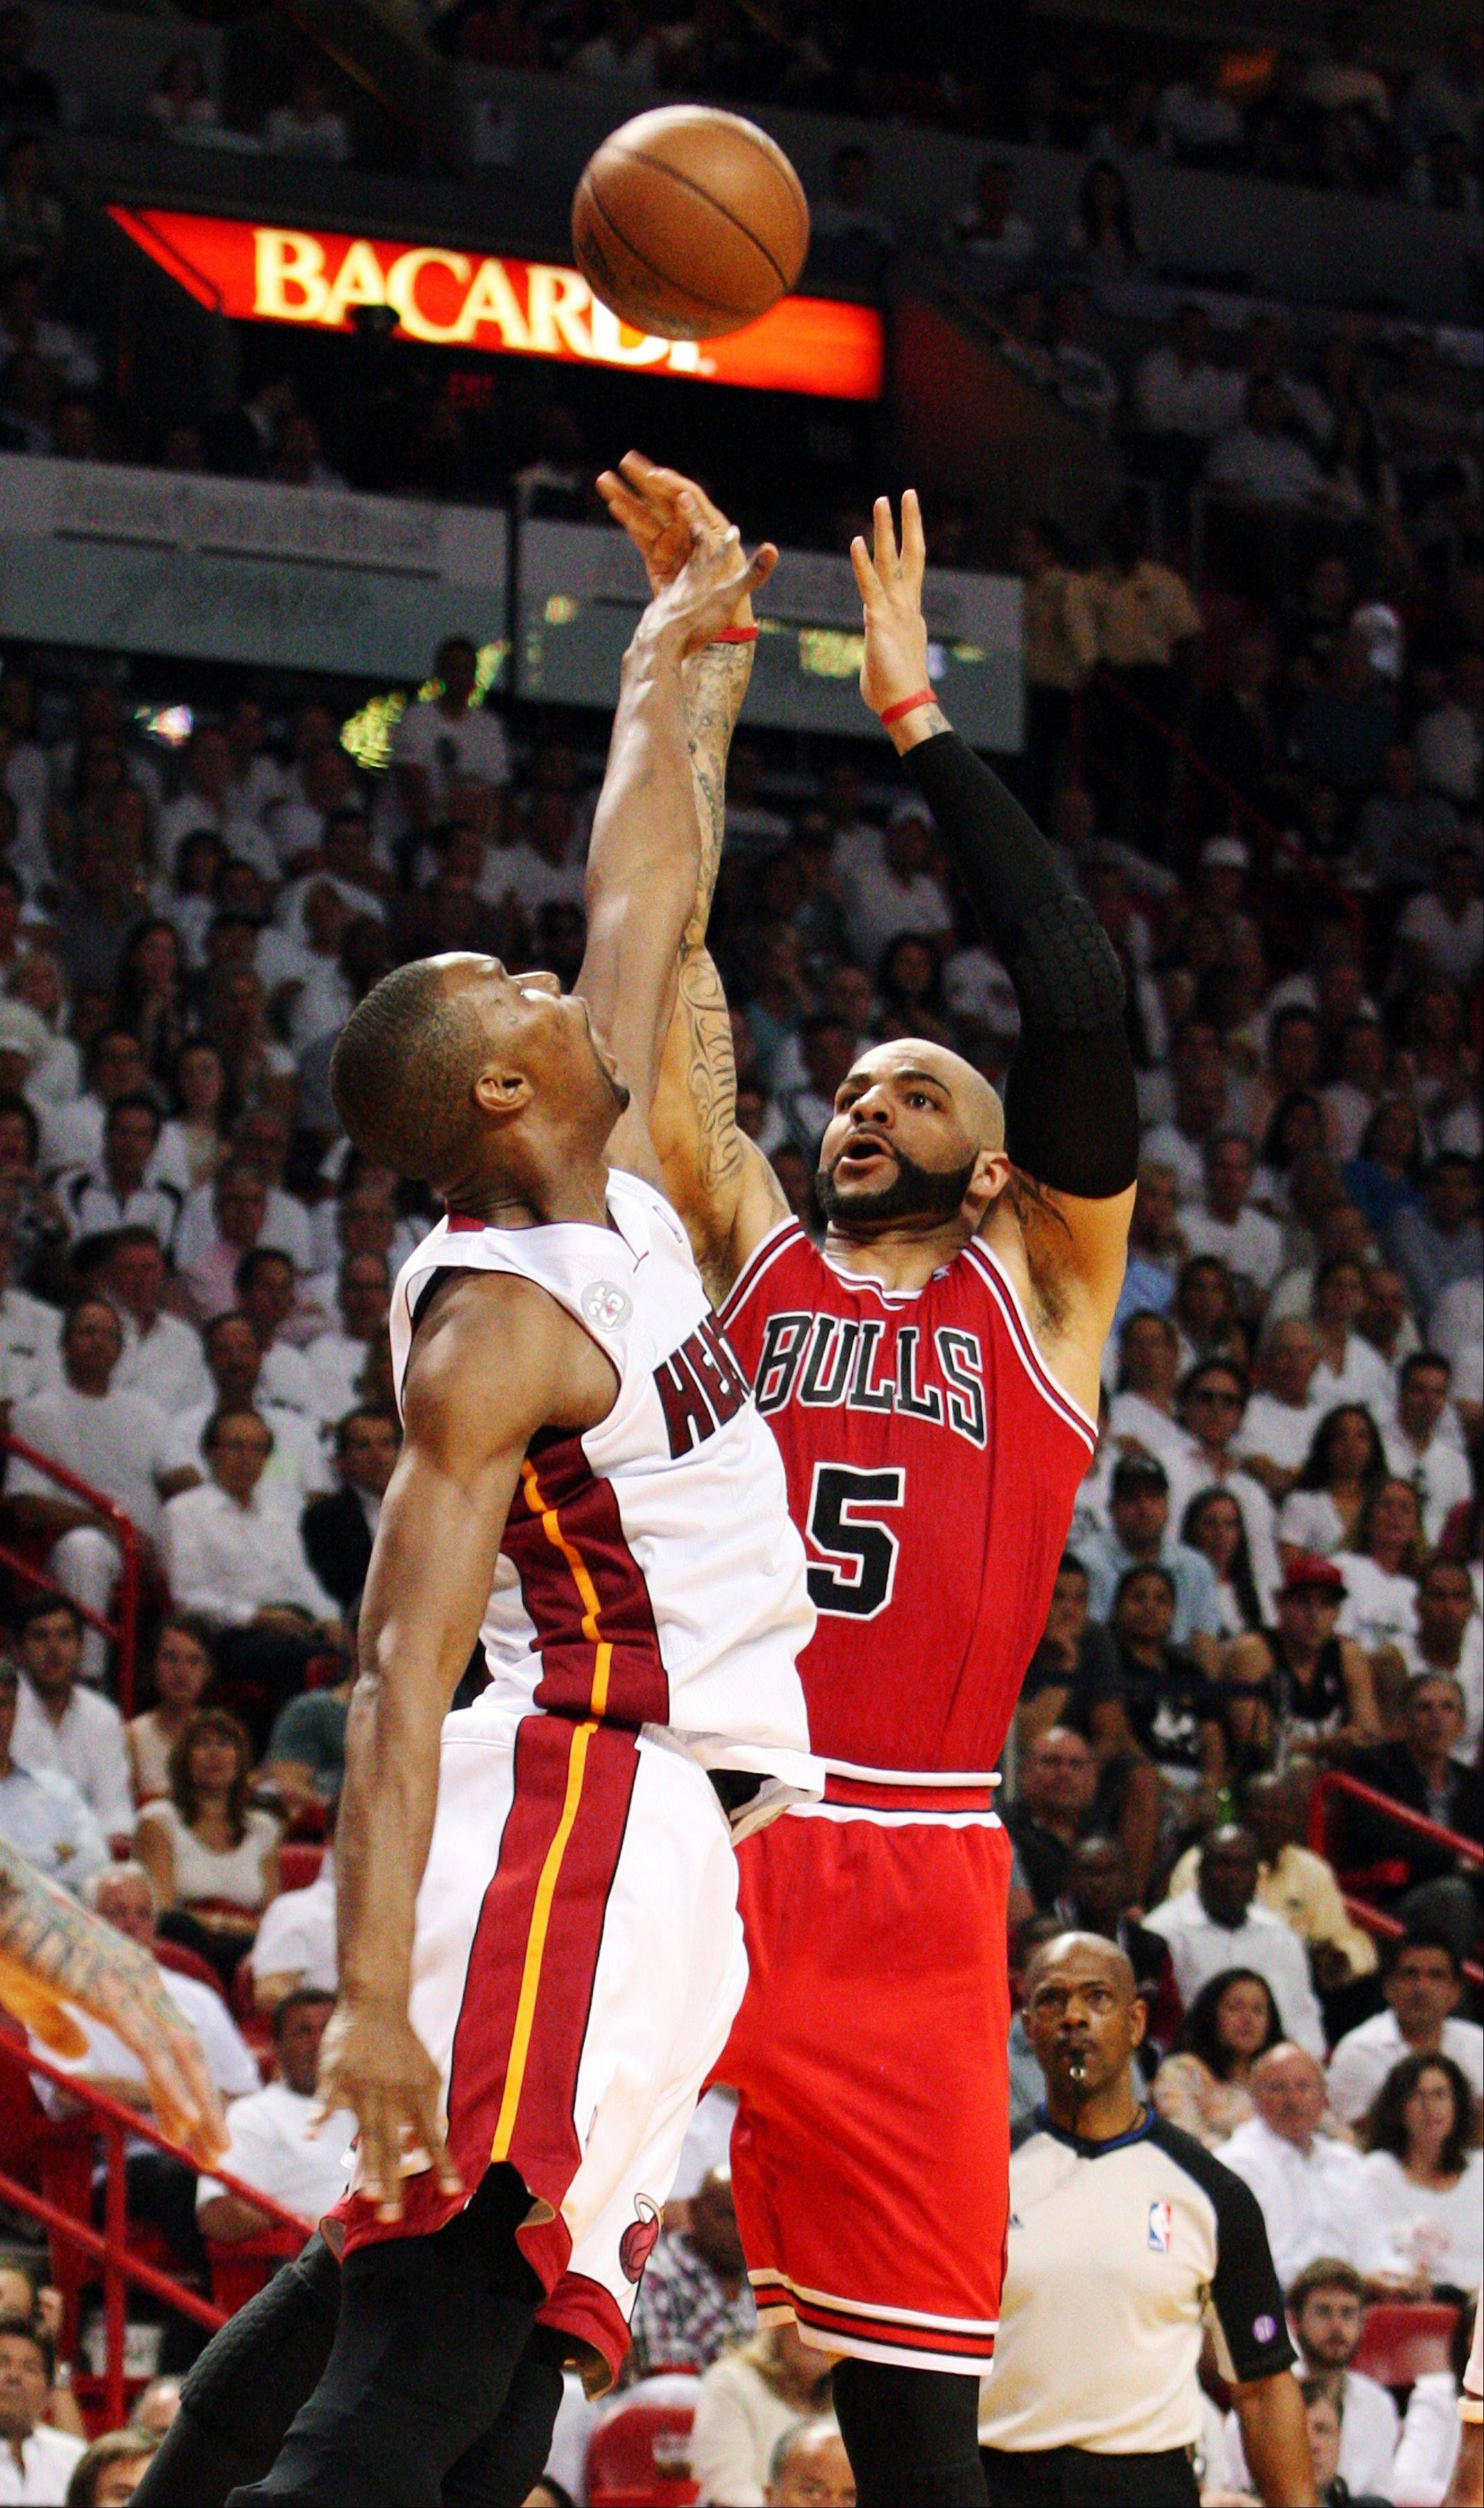 Miami Heat forward Chris Bosh, left, tries to block a shot by Chicago Bulls forward Carlos Boozer during the first half of Game 1 of the NBA basketball playoff series in the Eastern Conference semifinals, Monday, May 6, 2013 in Miami.